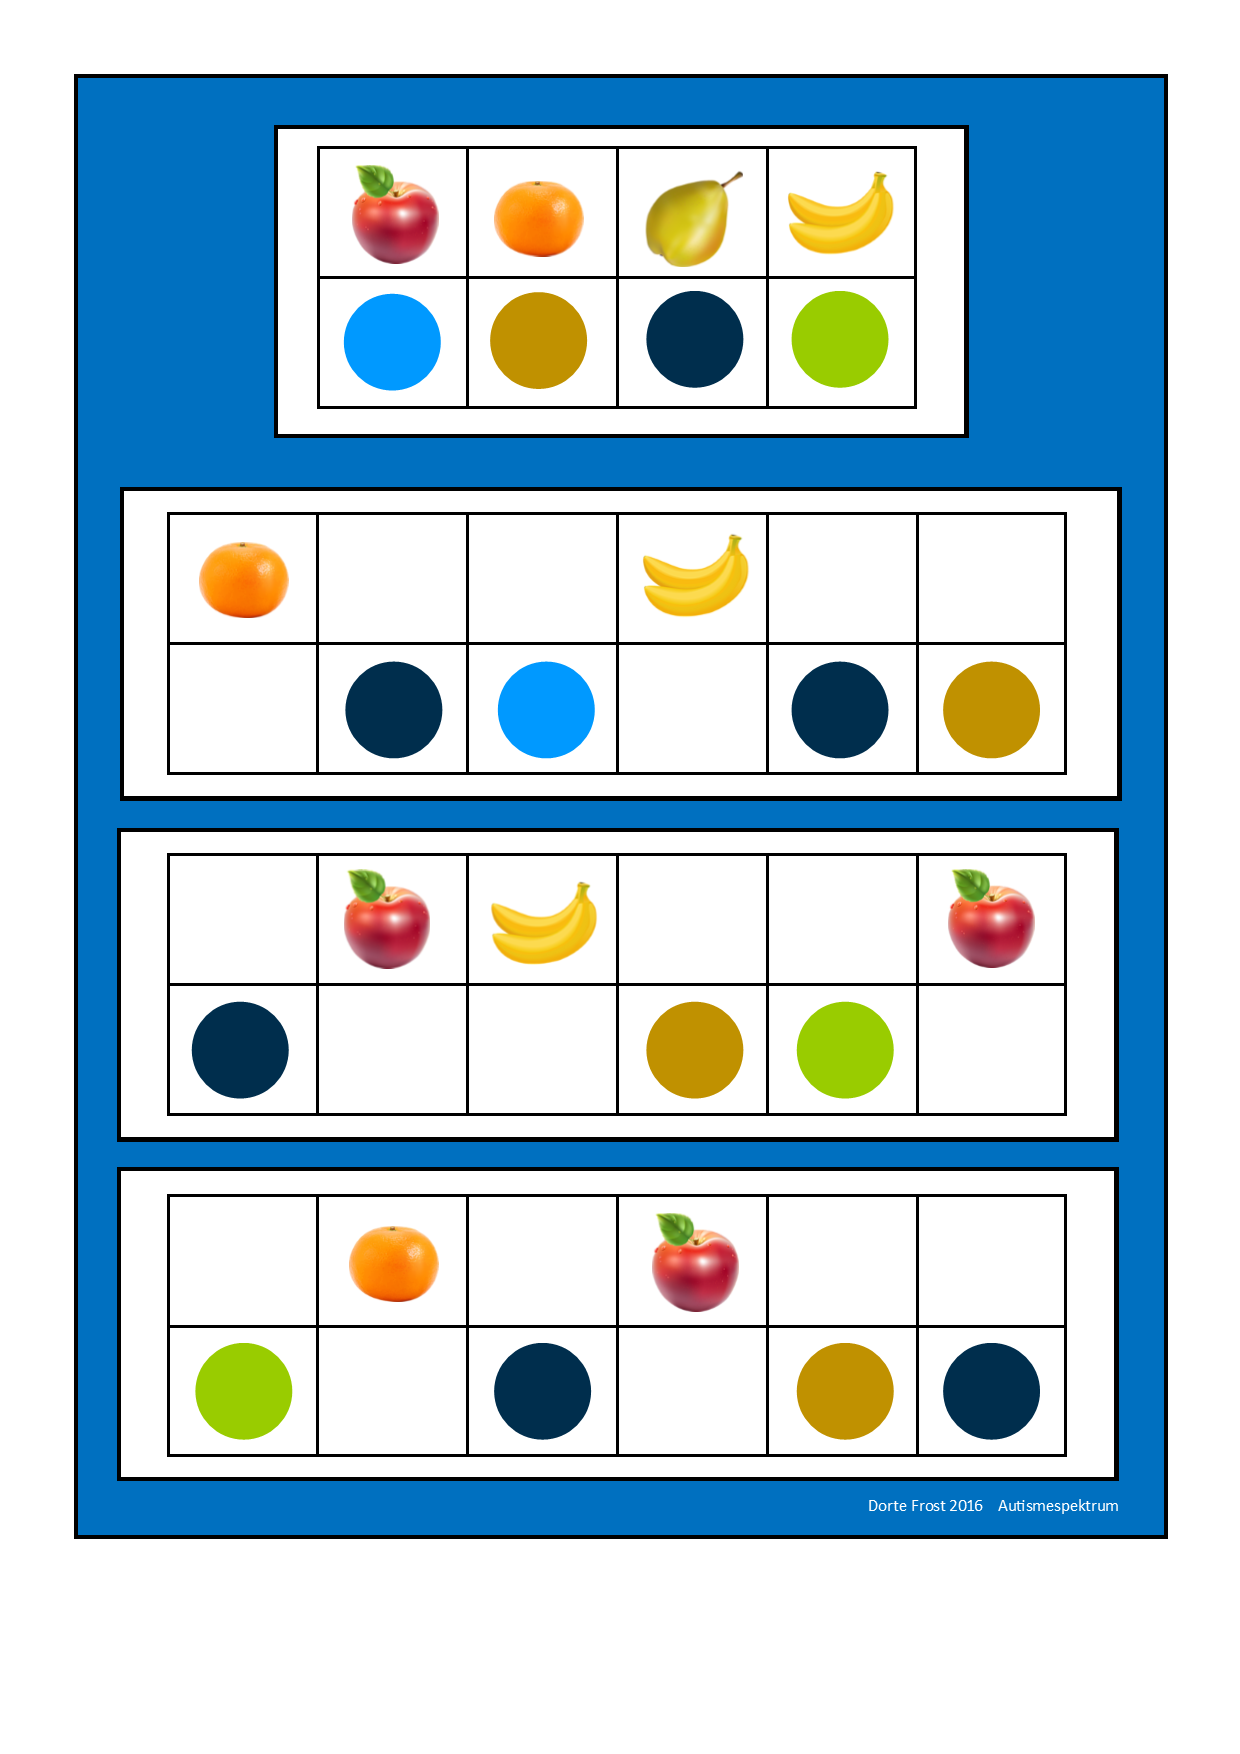 Board1 For The Fruit Visual Perception Game Find The